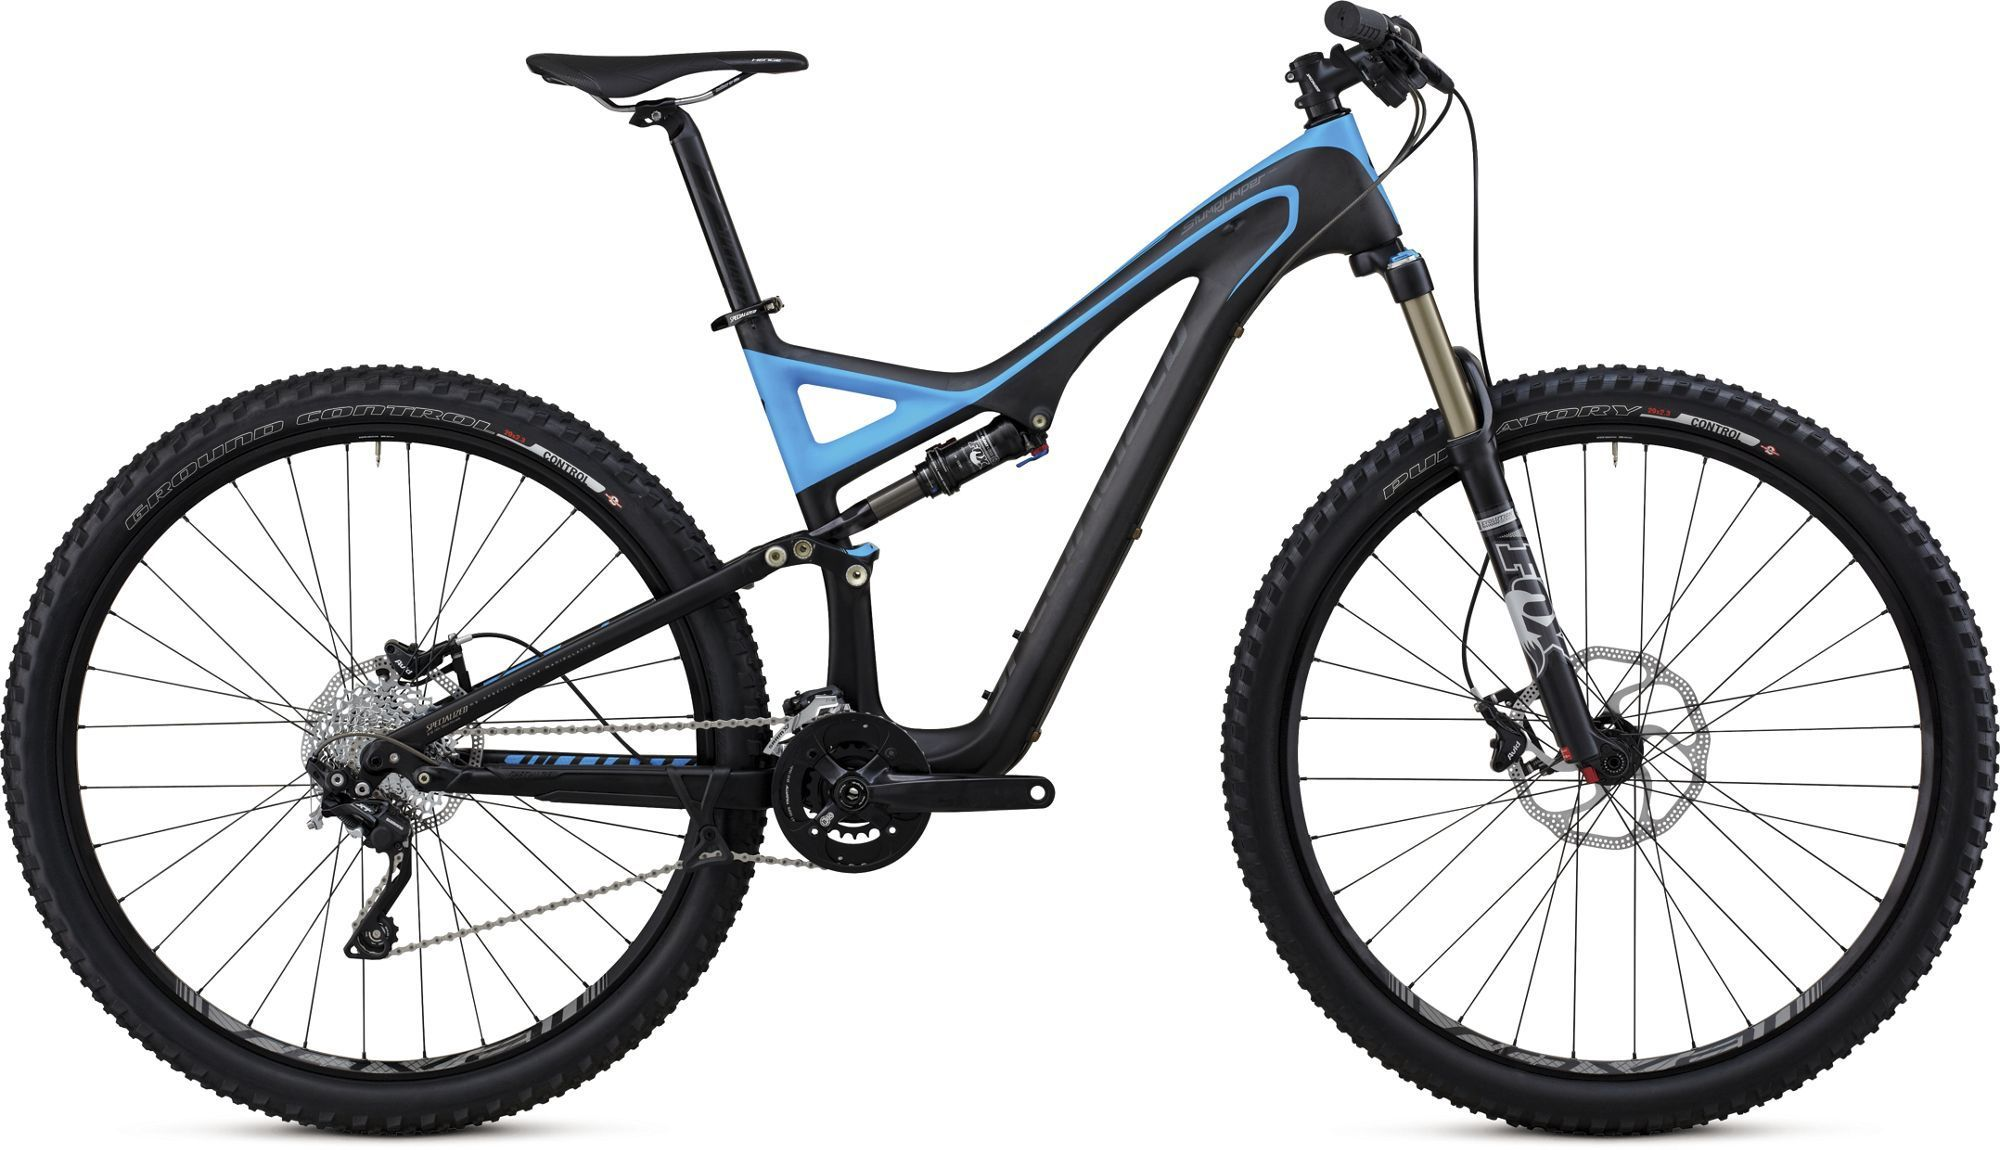 Specialized Stumpjumper Fsr Comp Carbon 2013 Review The